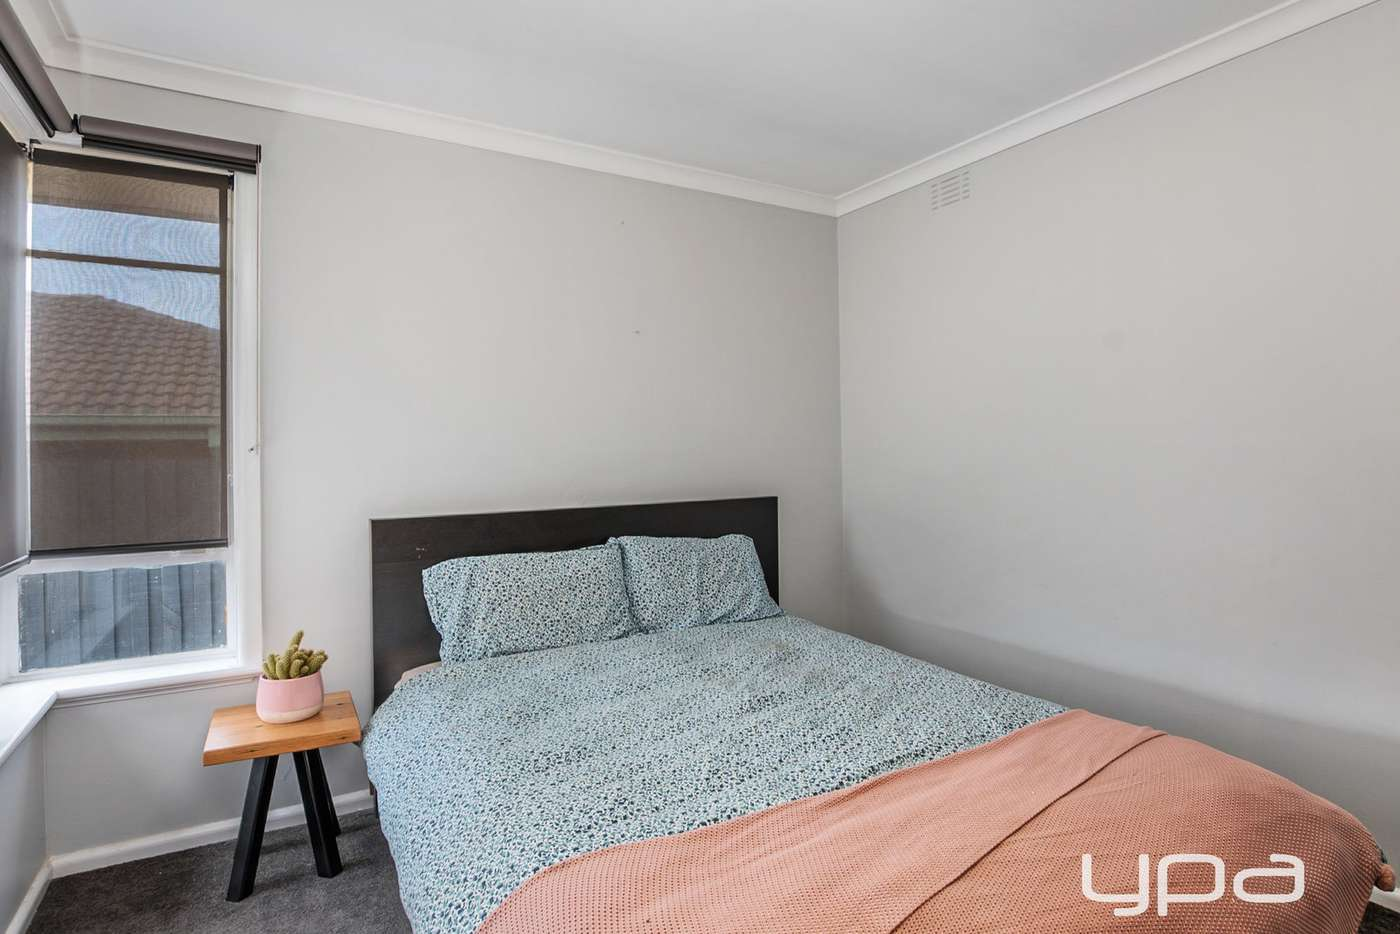 Fifth view of Homely house listing, 55 Masons Lane, Bacchus Marsh VIC 3340